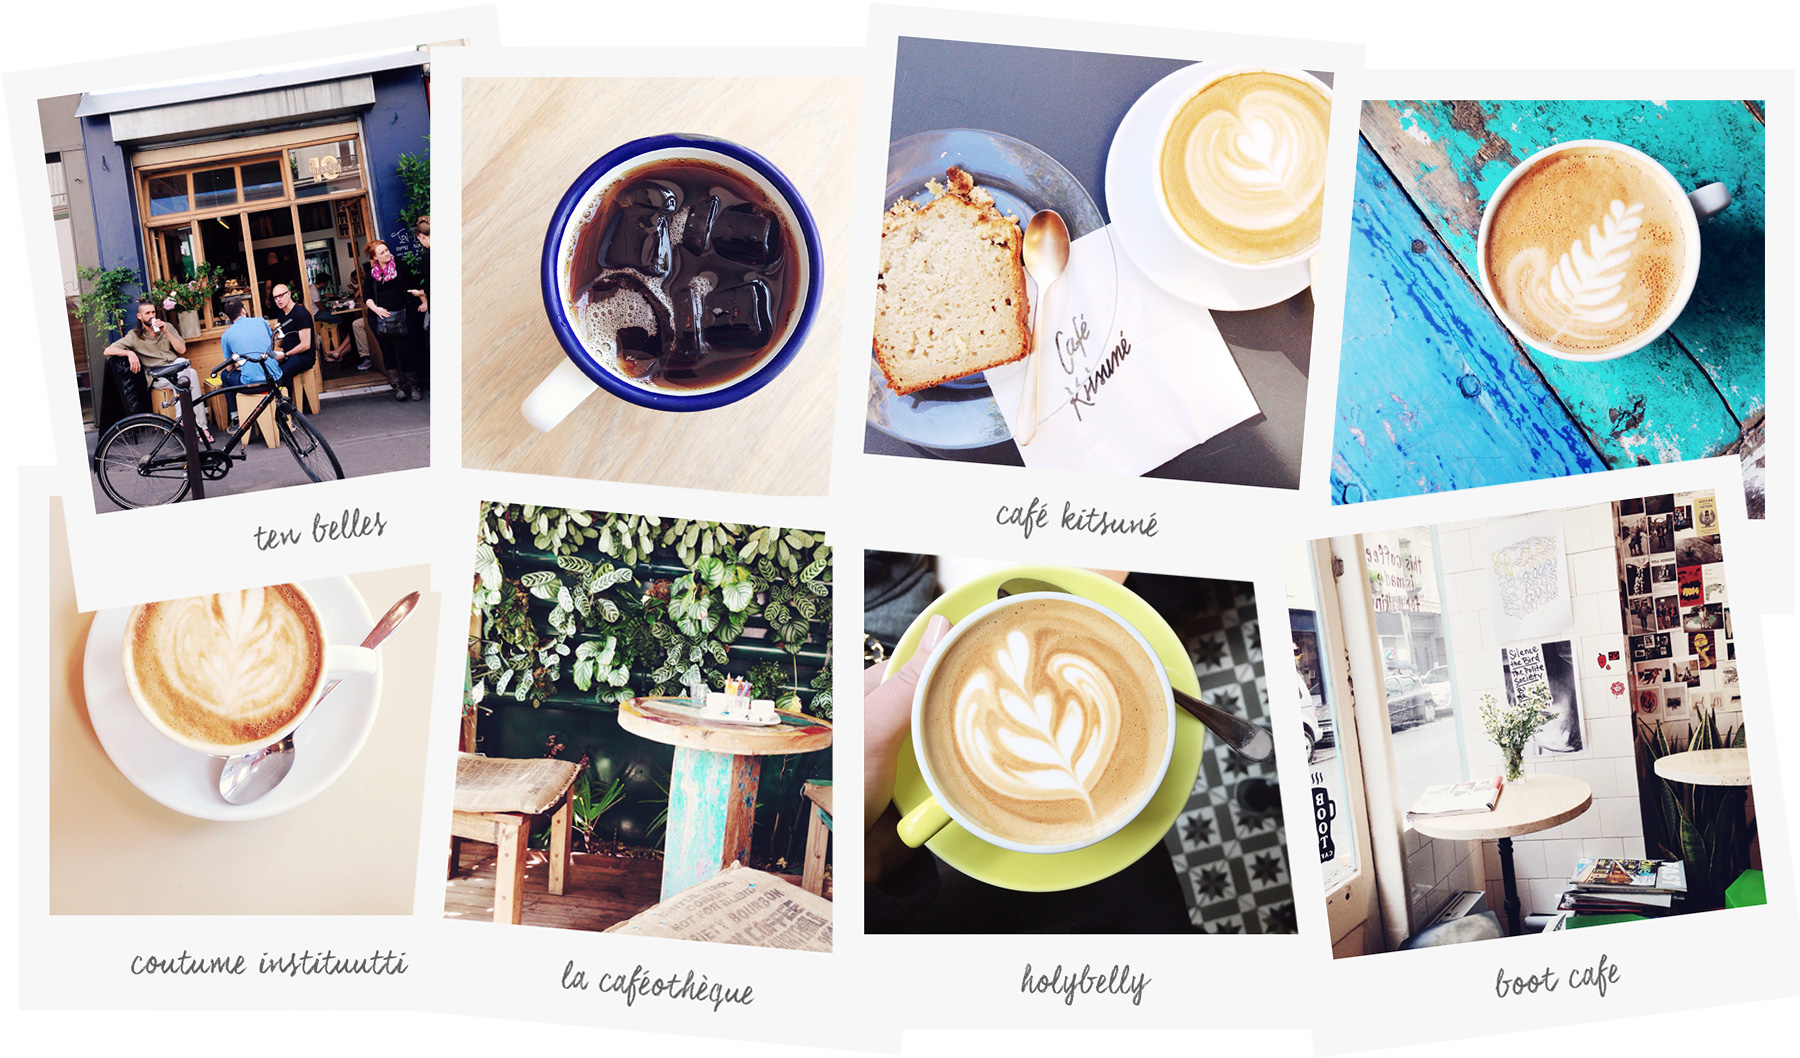 Coffee in Paris photo by Carin Olsson (Paris in Four Months)